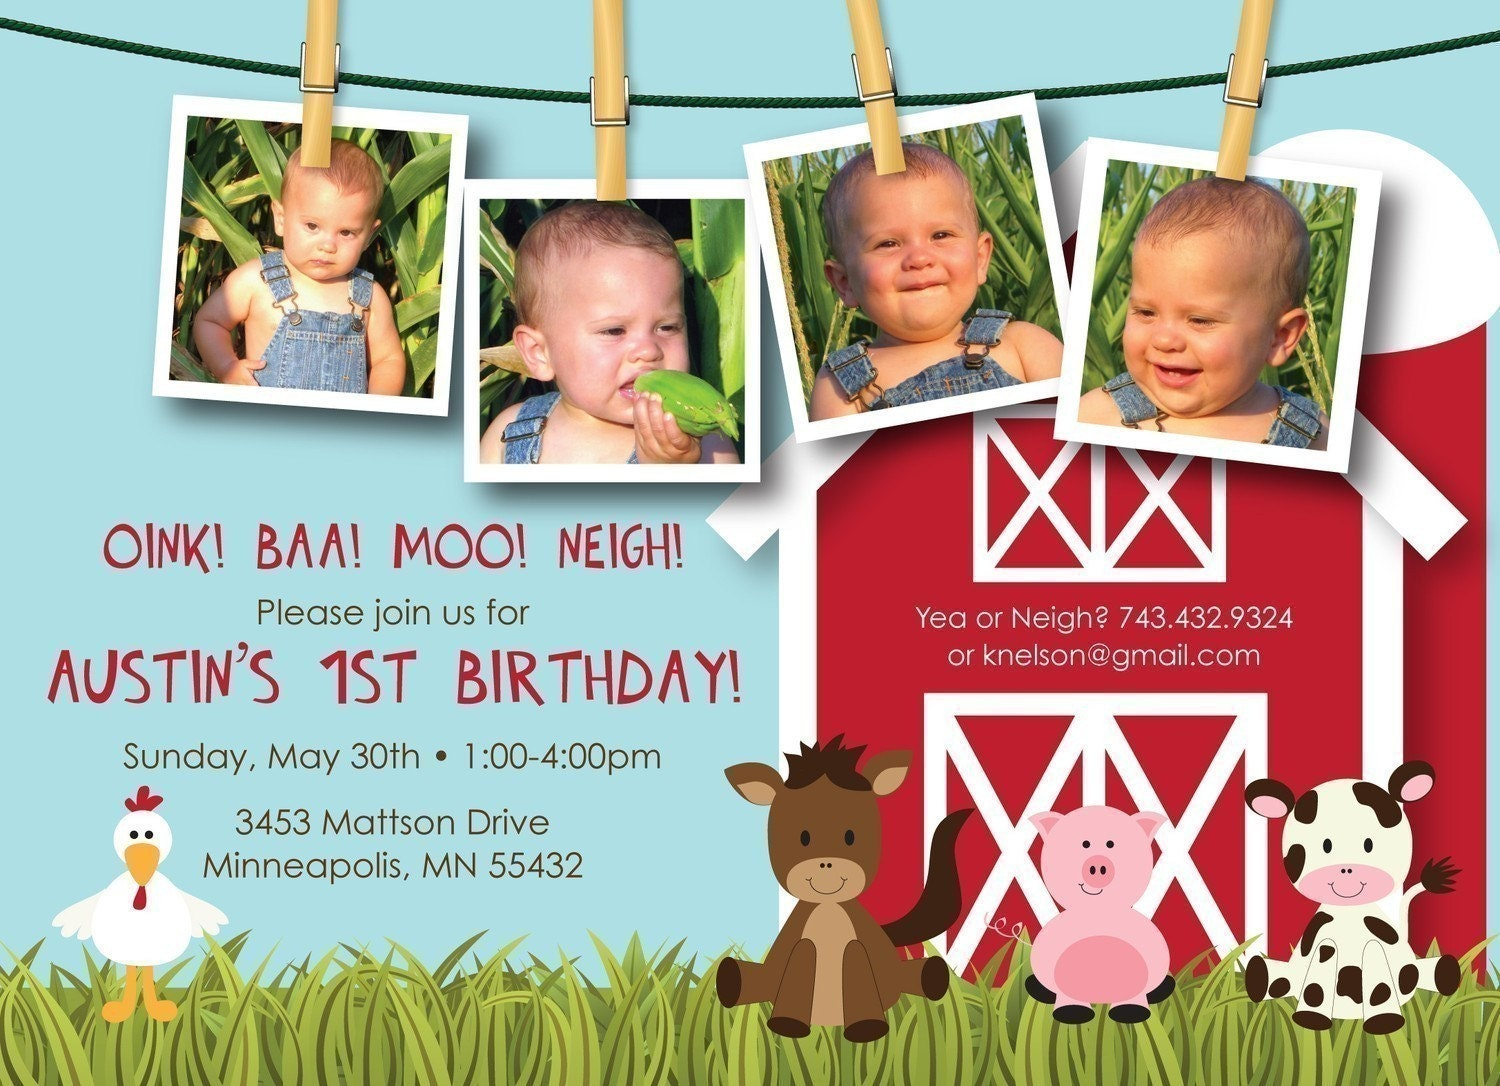 17 Best images about Jax's 1st Birthday- Farm Barn Theme on ...